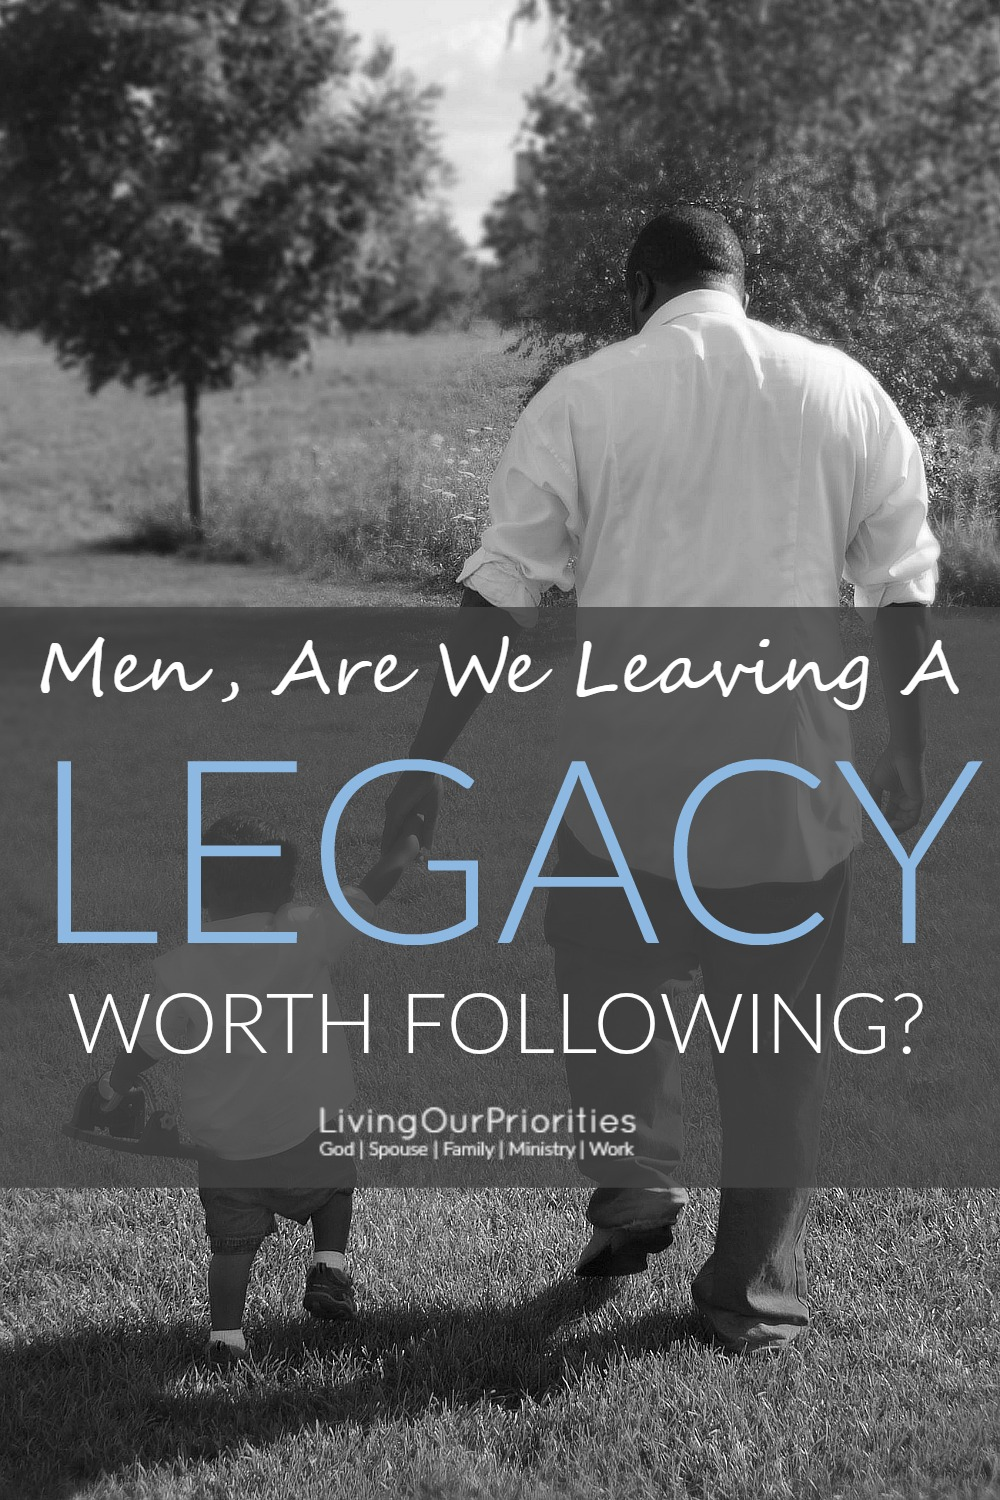 When we think of leaving a legacy, we think of leaving behind things of value. While that's good, it's just that…THINGS. A legacy is so much more than material things. It's a legacy built on moral stability, and that's leaving a legacy worth following.